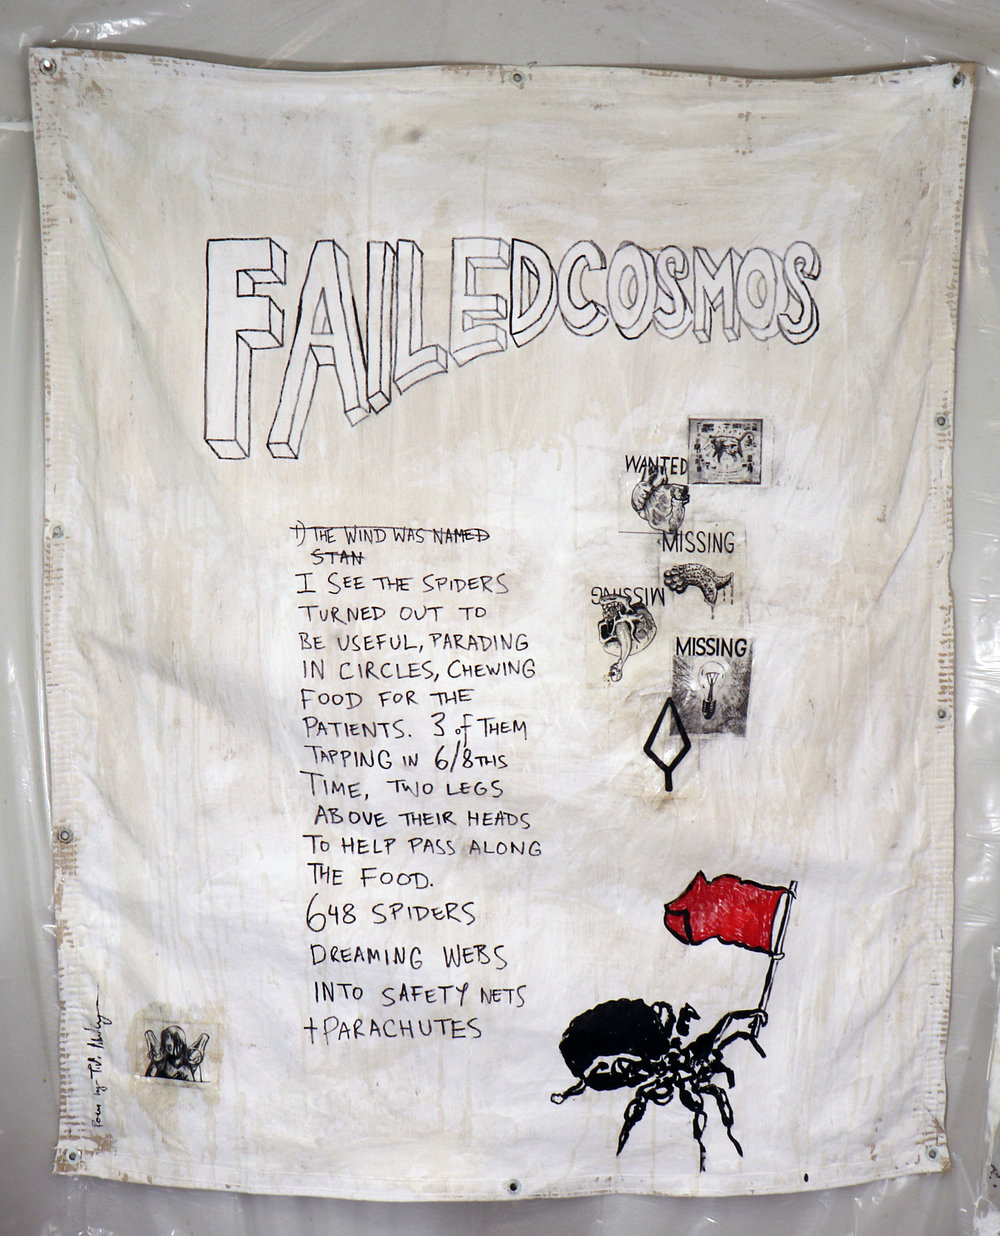 Failed Cosmos: 648 Spiders . Based on a poem by Tish Markley. Acrylic, coffee, stickers and mixed media on canvas tarp.